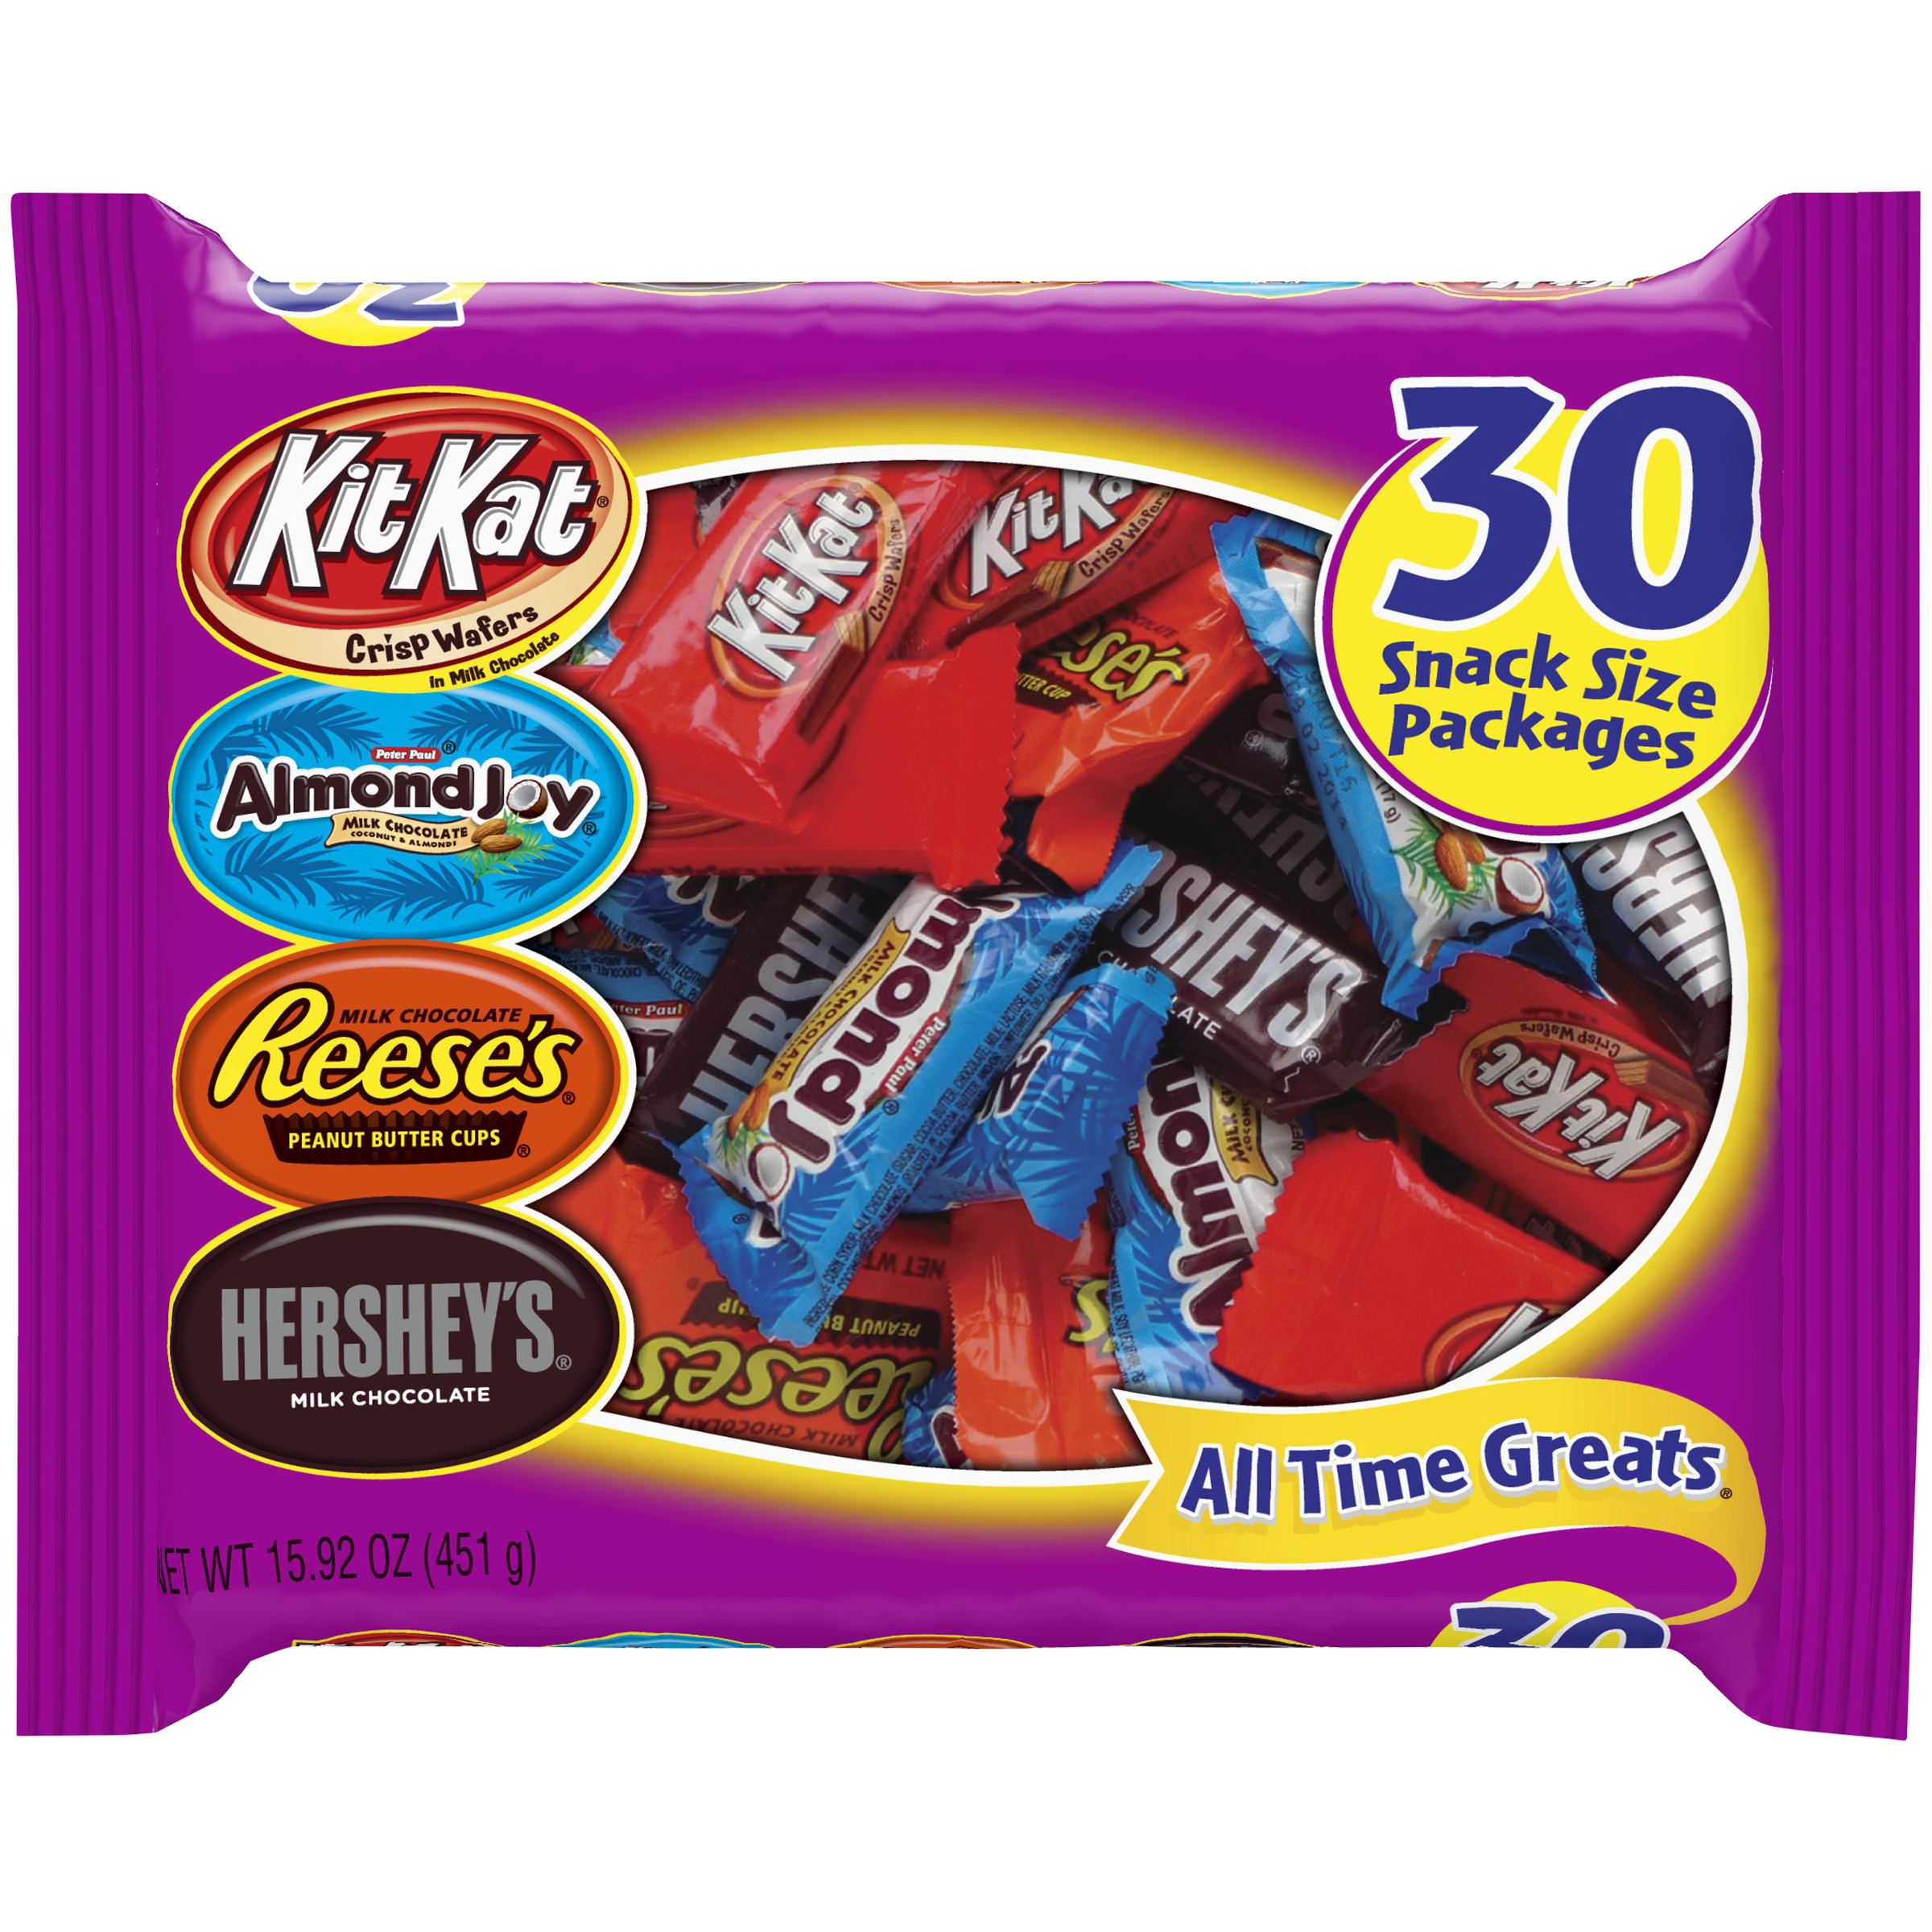 HERSHEY'S All Time Greats Snack Size Assortment, 30 pieces, 15.92 oz